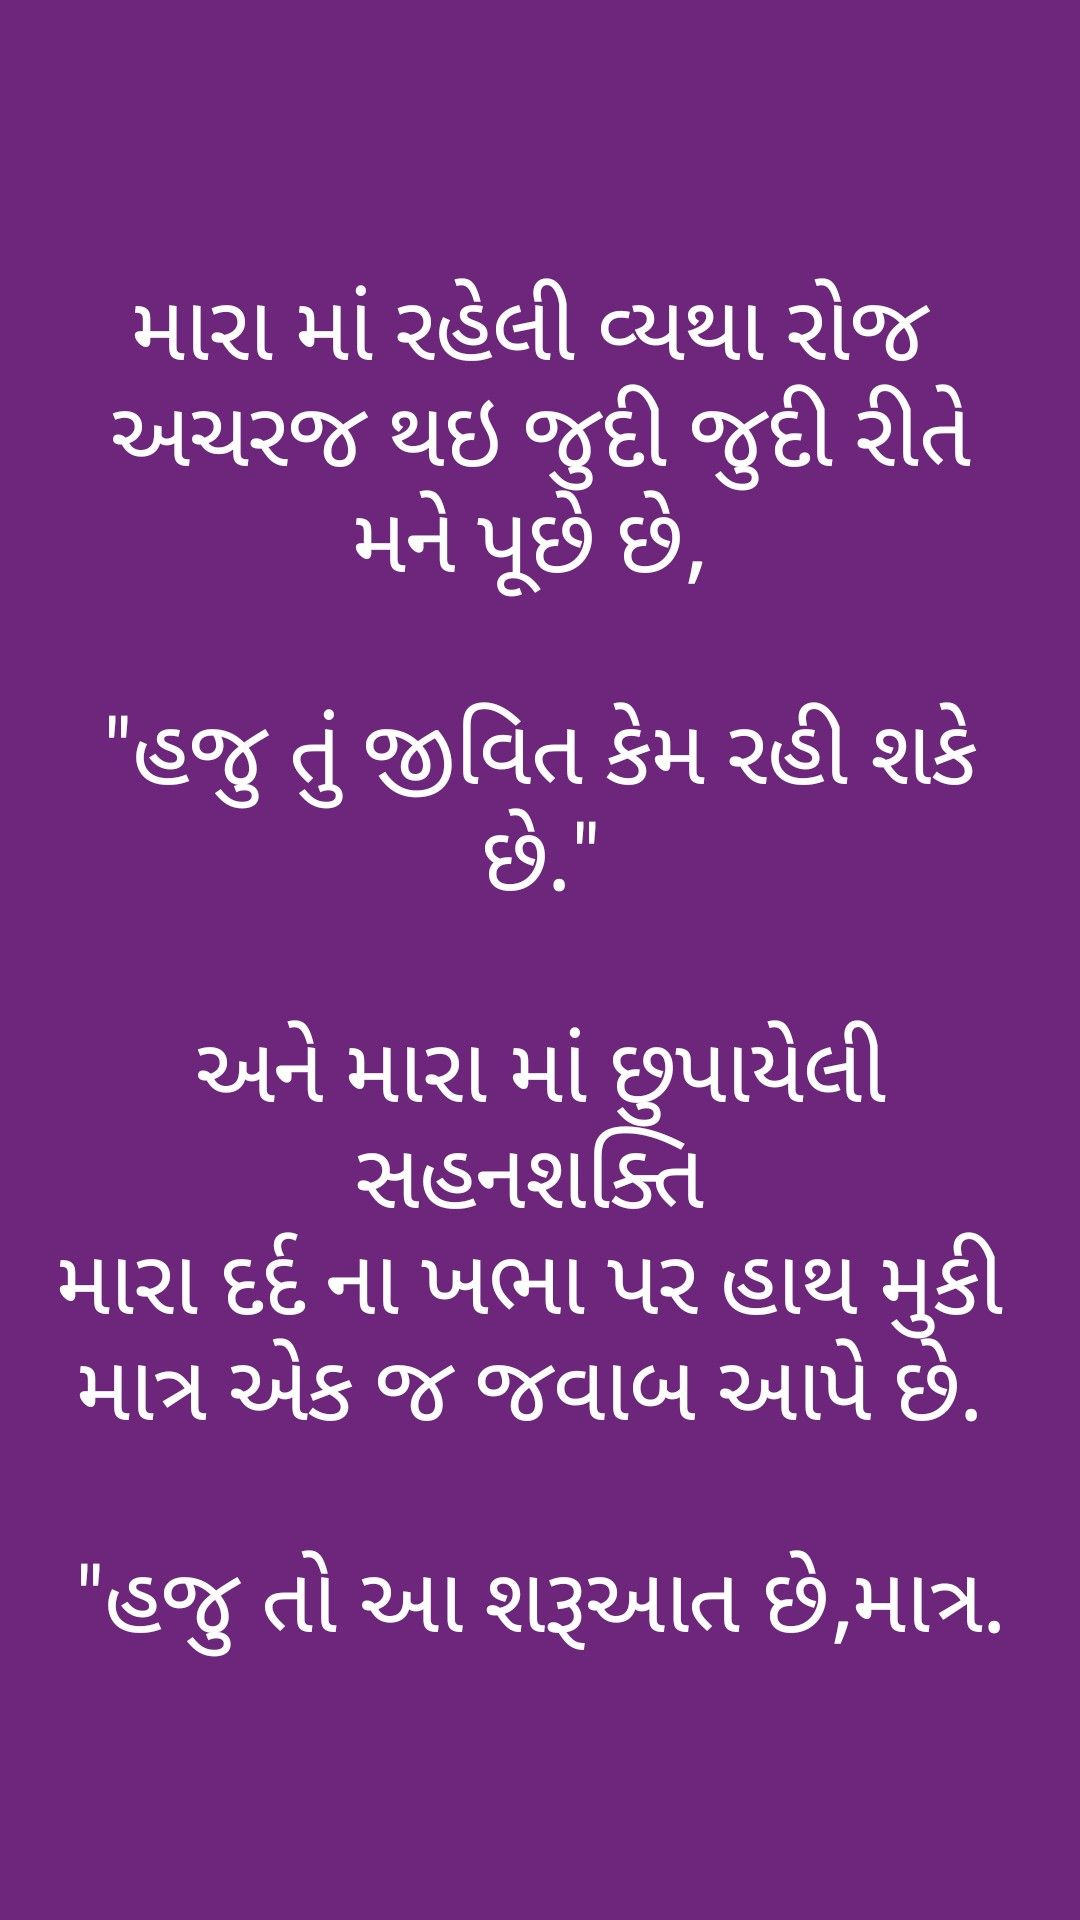 Pin by Pranami on Feelings Life quotes, Gujarati quotes